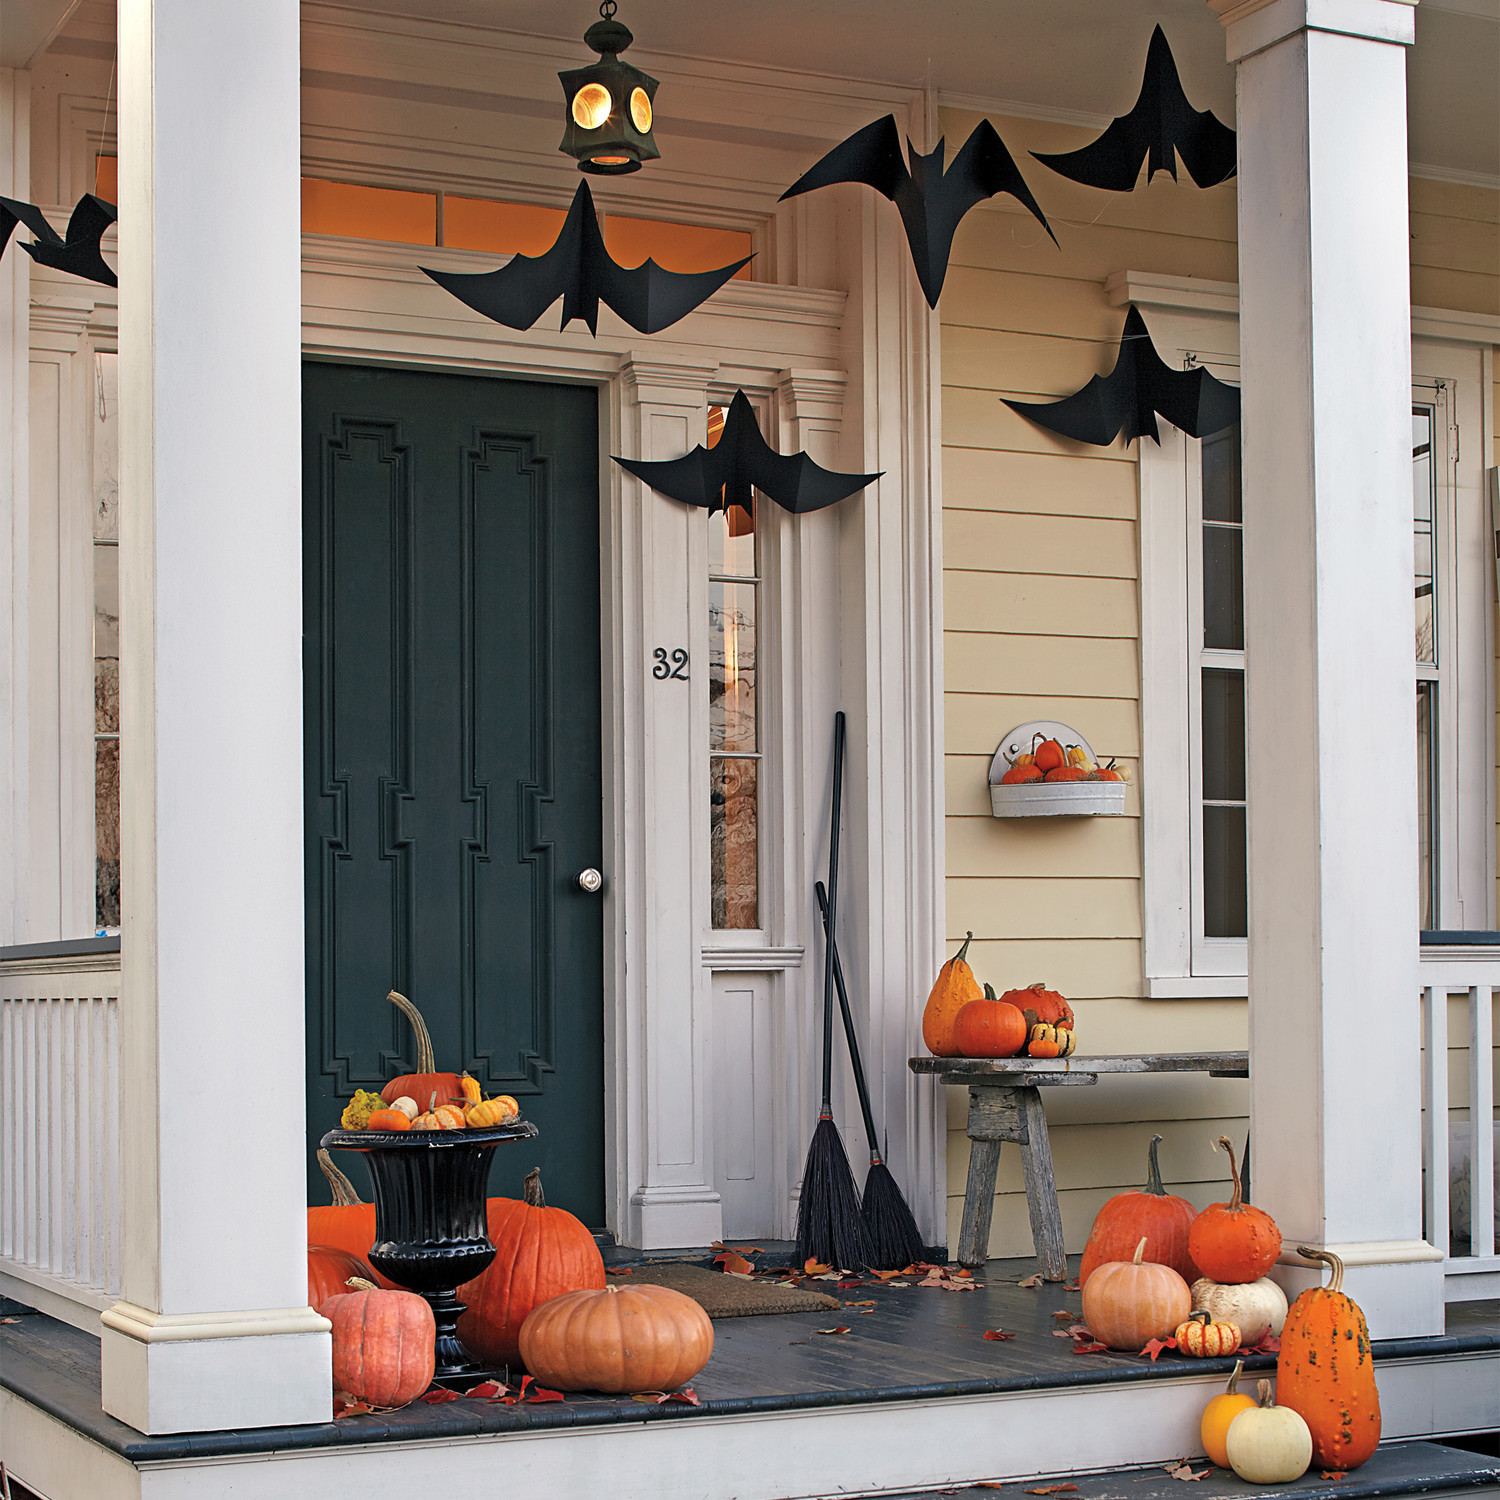 Outdoor halloween decorations 2014 - Outdoor Halloween Decorations